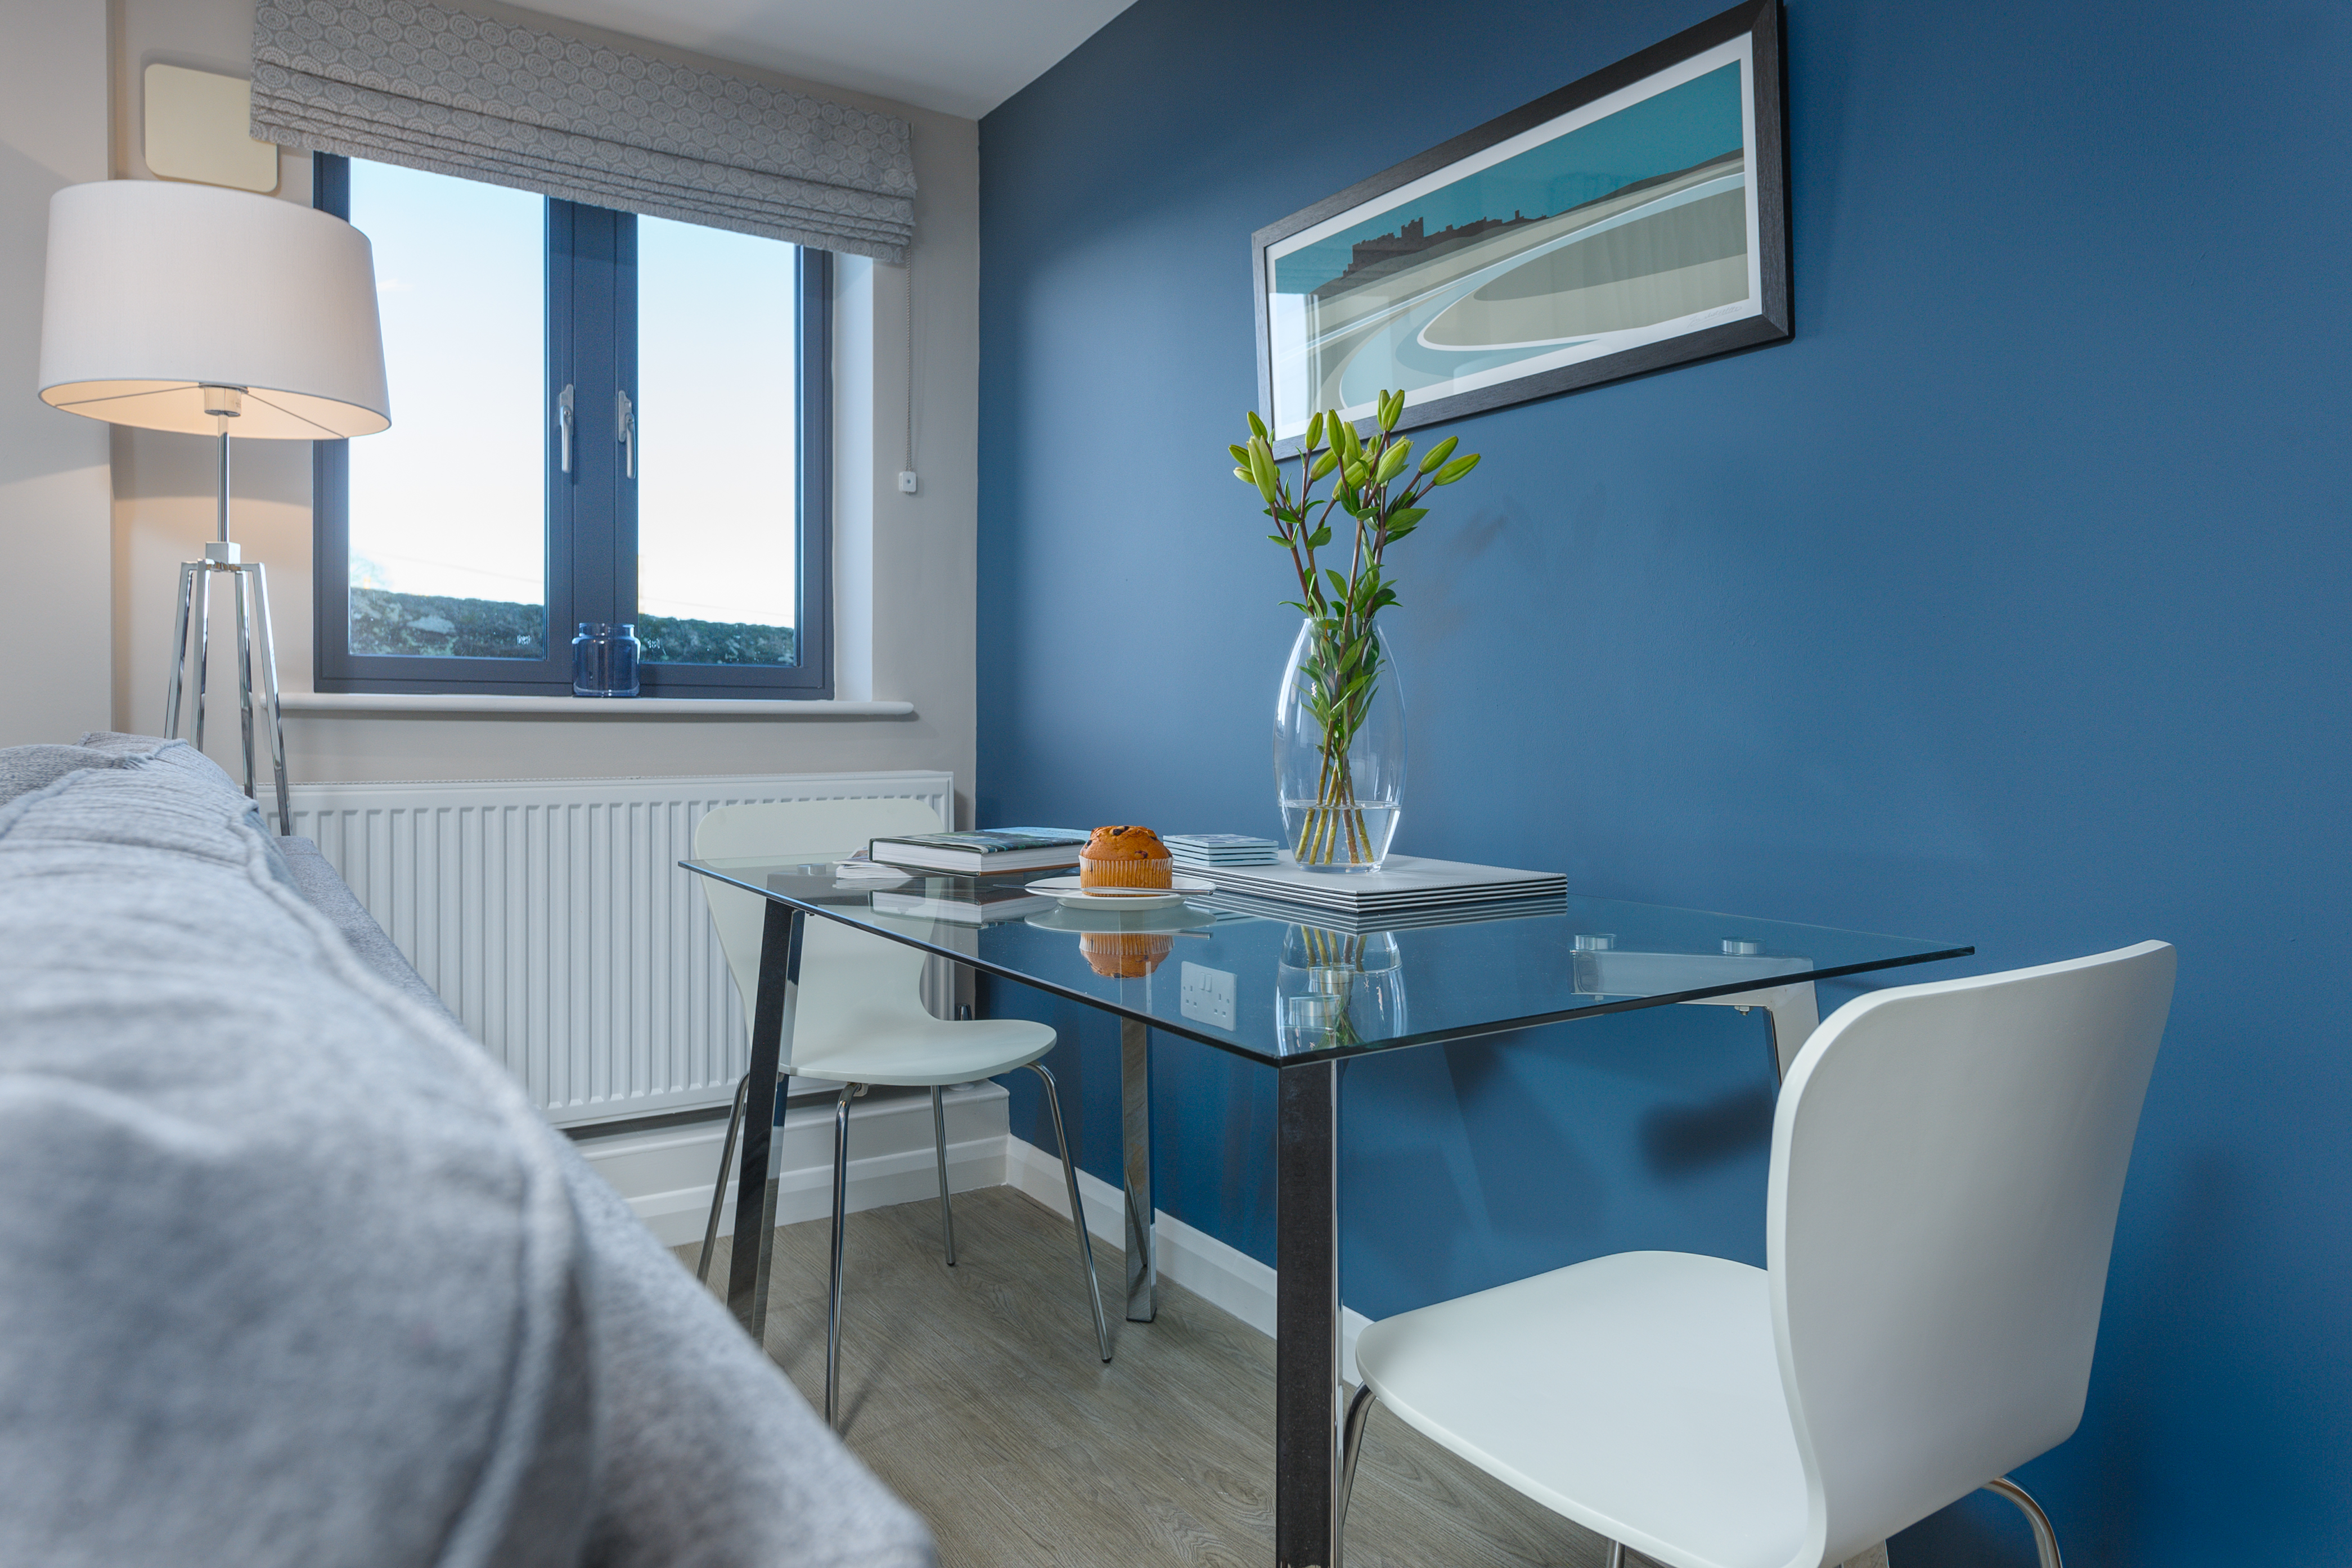 luxury holiday cottages in Alnwick boutique 5 star romantic sleeps 2 private parking Northumberland